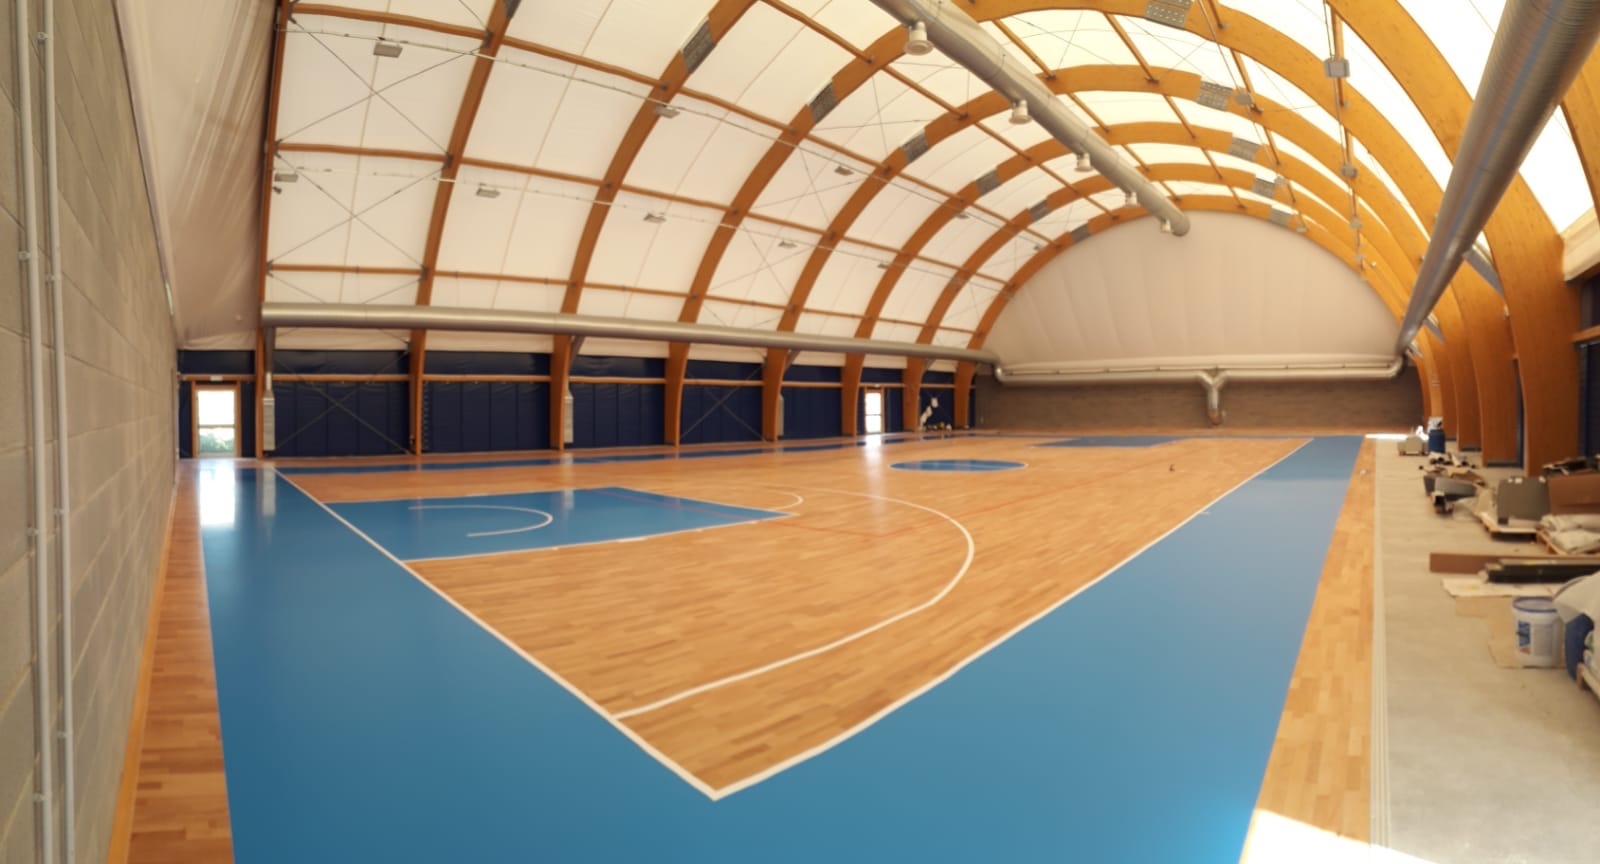 New sports flooring in Tuscany